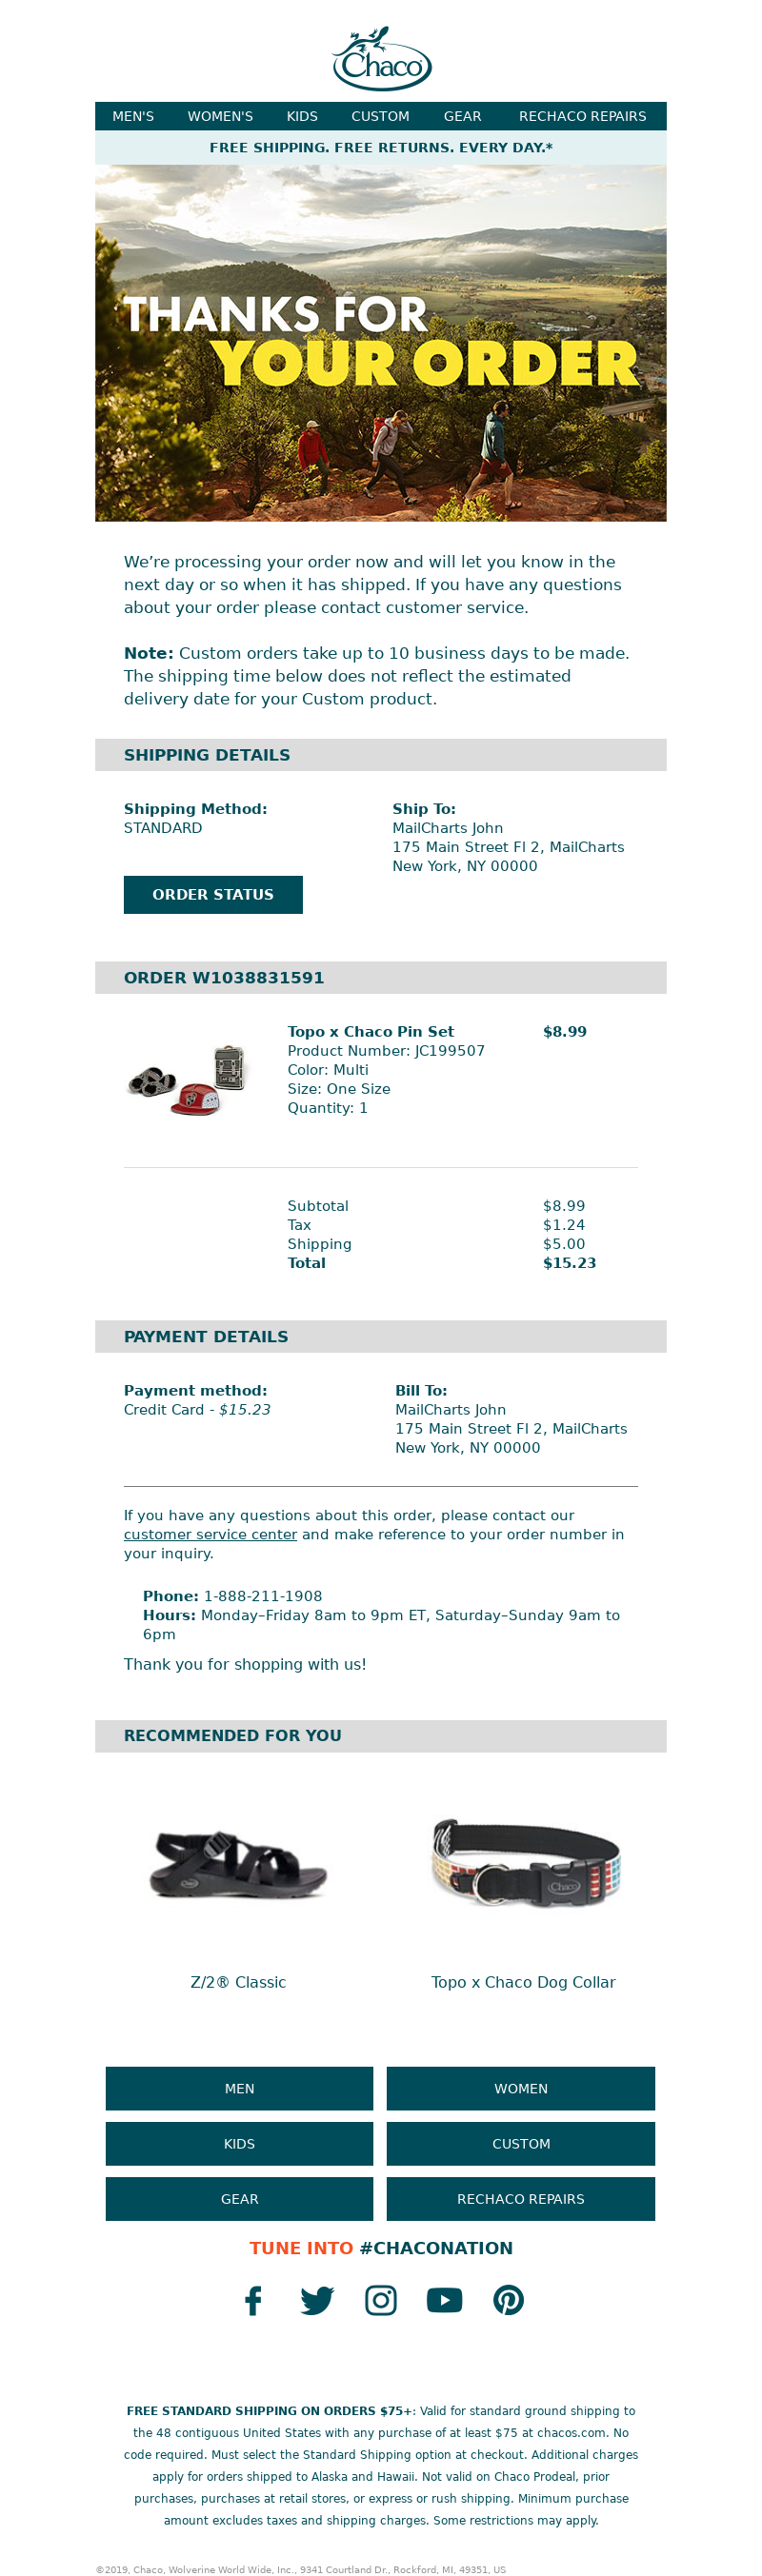 Chaco - Your Chaco Order Confirmation - Order #W1038831591